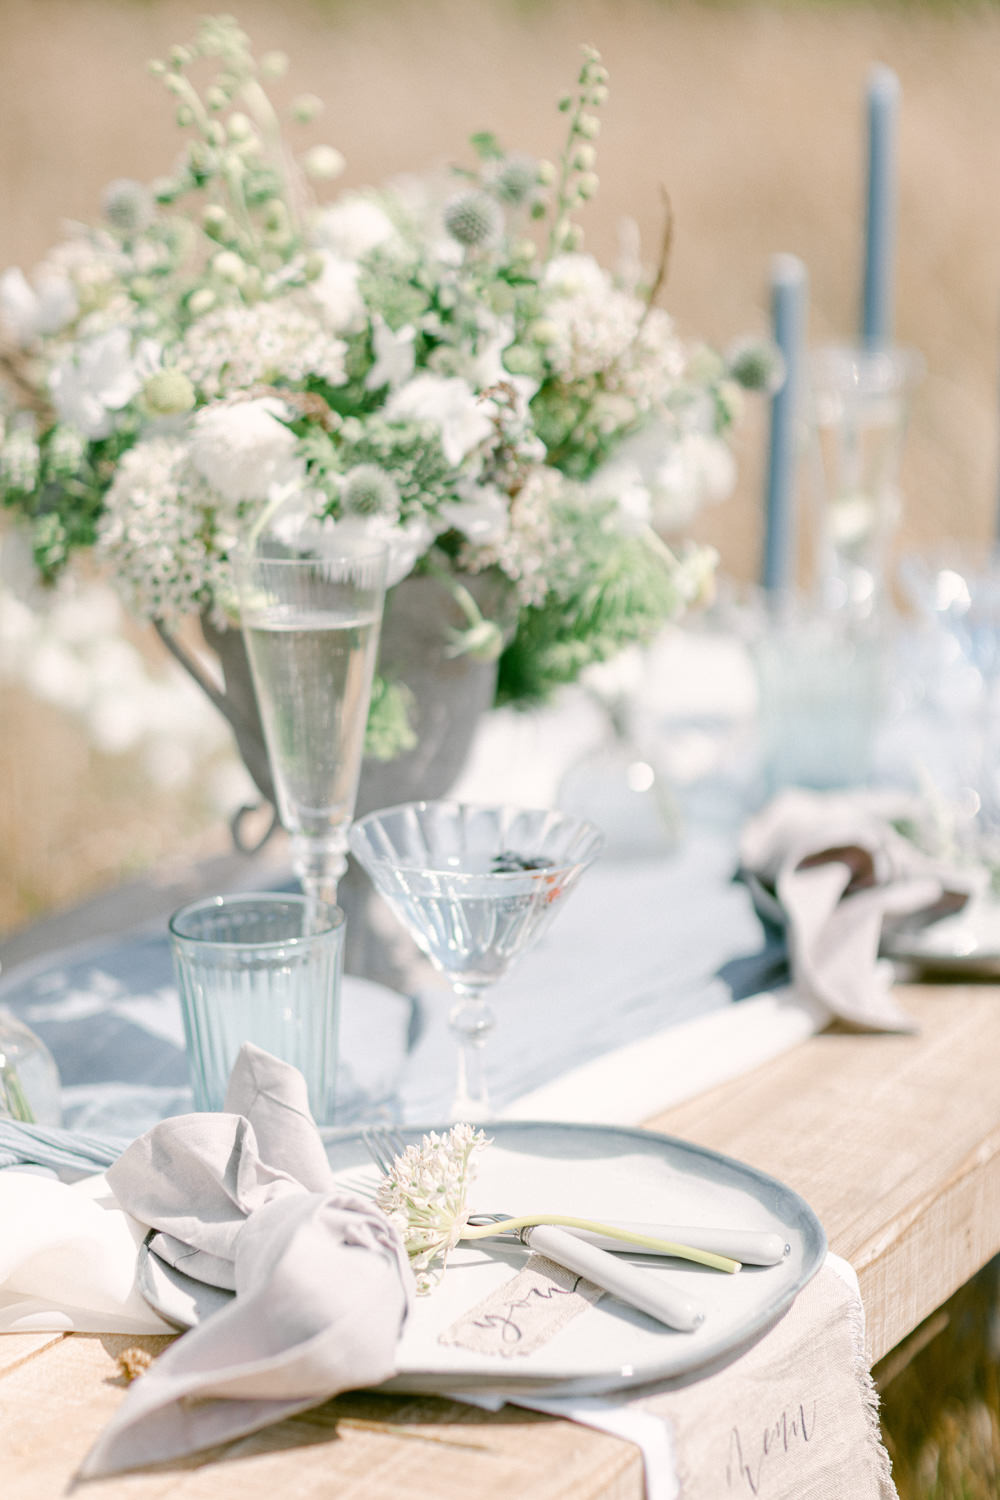 Family Elopement Ideas Sophie May Photo Table Tablescape Decor Flowers Candles Blue